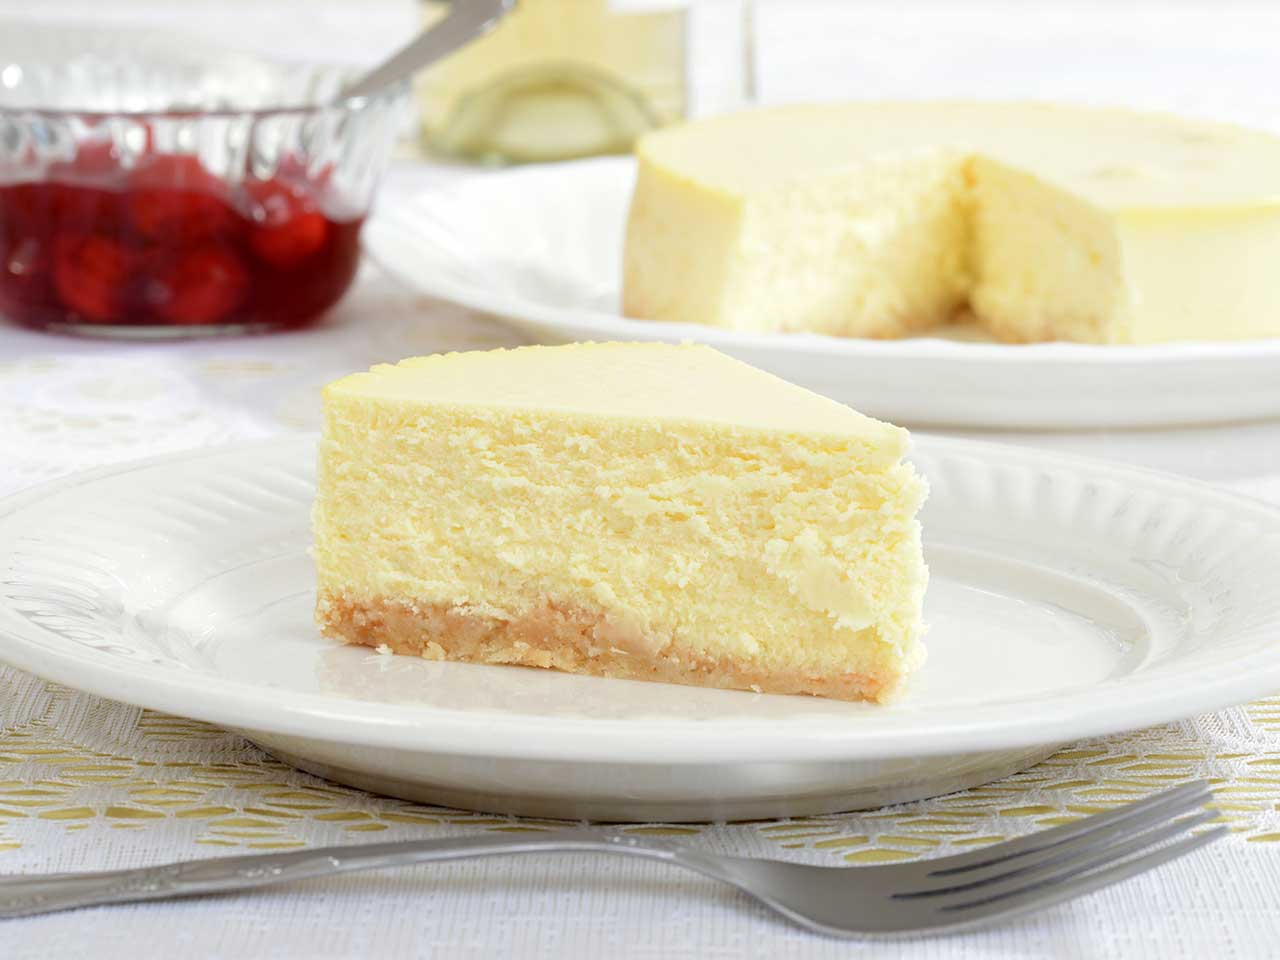 A slice of New York style cheesecake